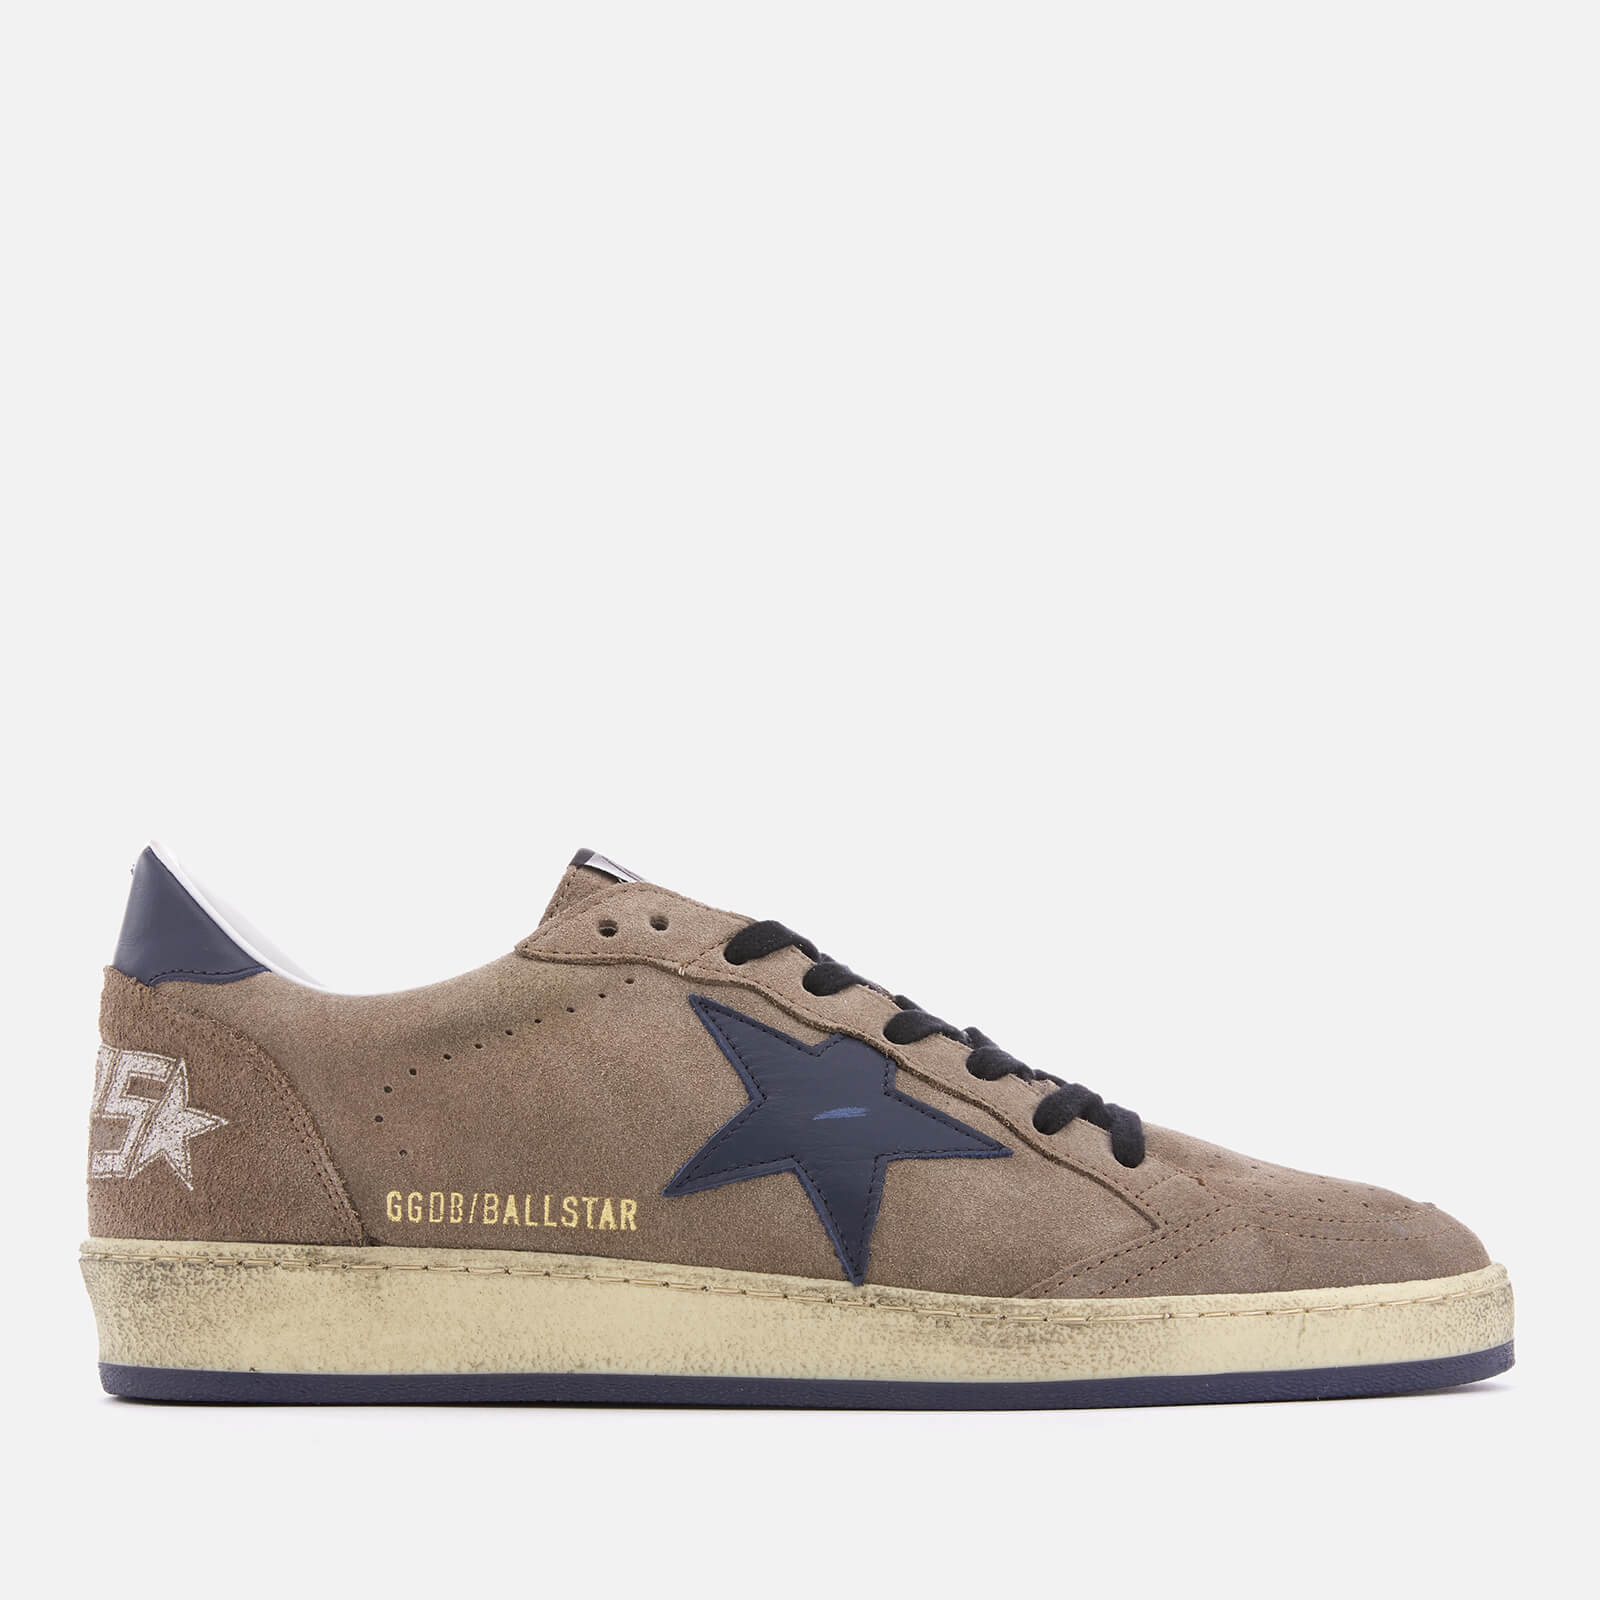 04c218b8a9dab Golden Goose Deluxe Brand Men s Ball Star Sneakers - Brown Suede Blue Star  - Free UK Delivery over £50